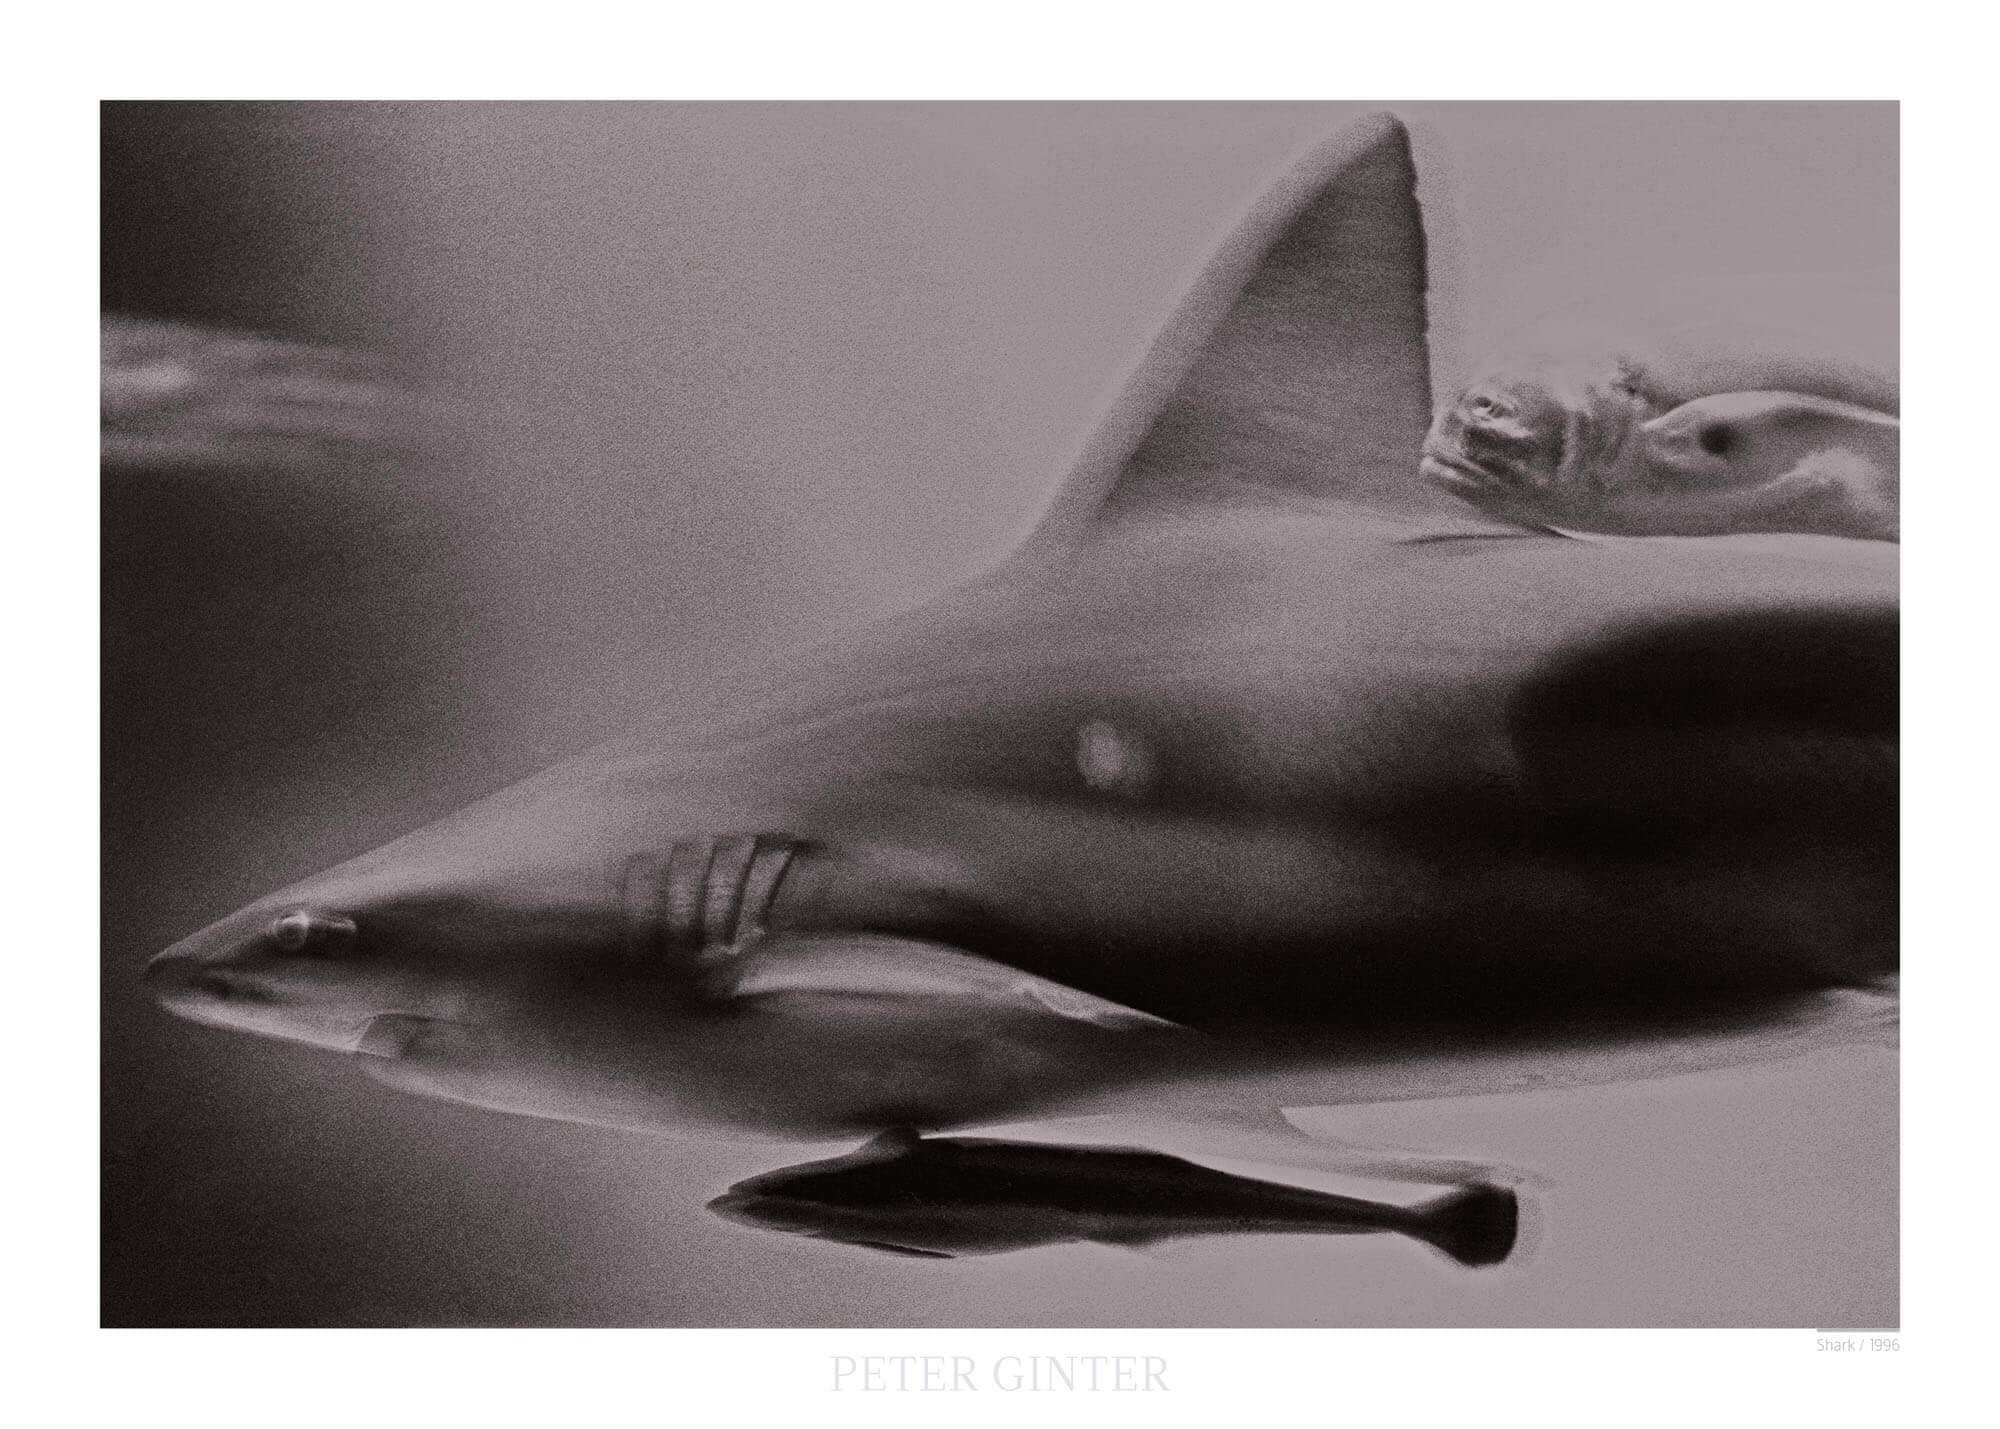 Shark / 1996 © Peter Ginter